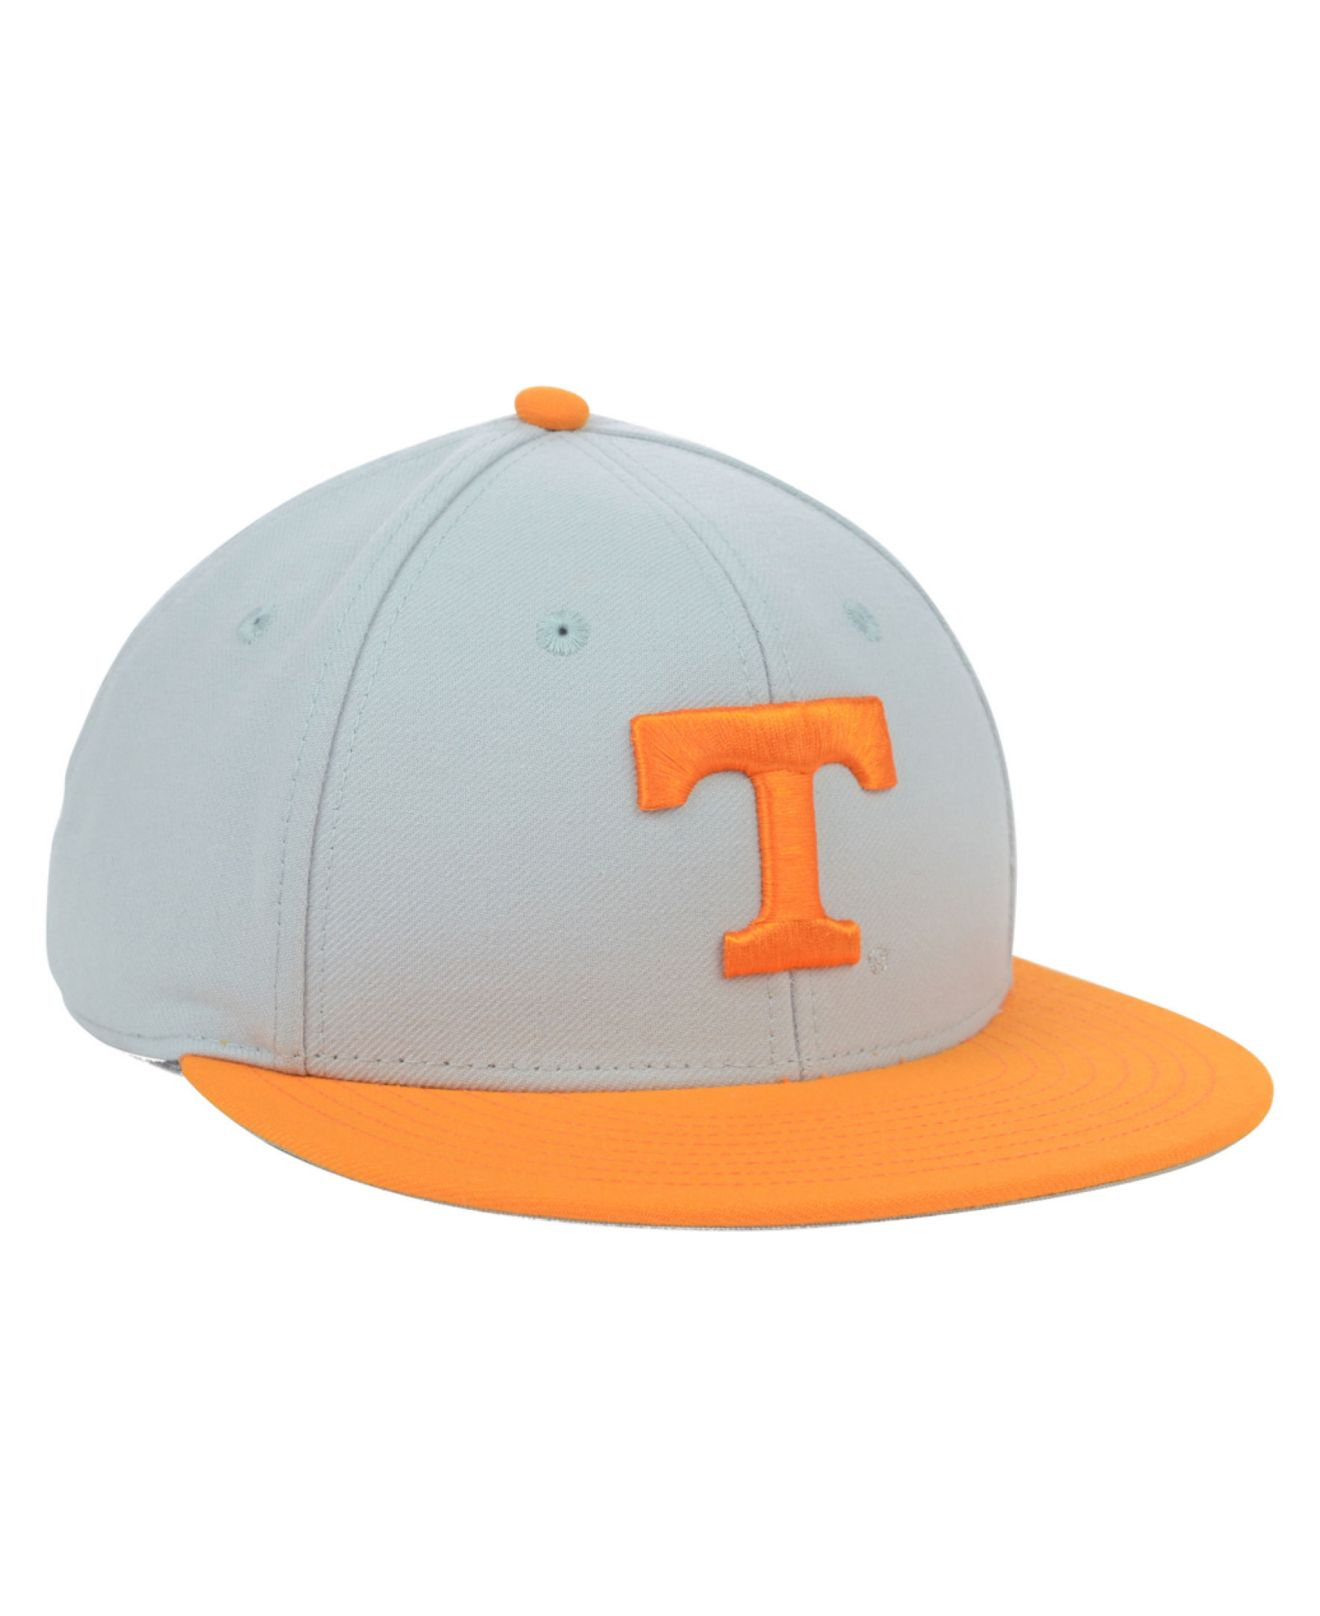 S//M NEW GREY//ORANGE ADIDAS TENNESSEE VOLUNTEERS ON-FIELD BASEBALL CAP HAT